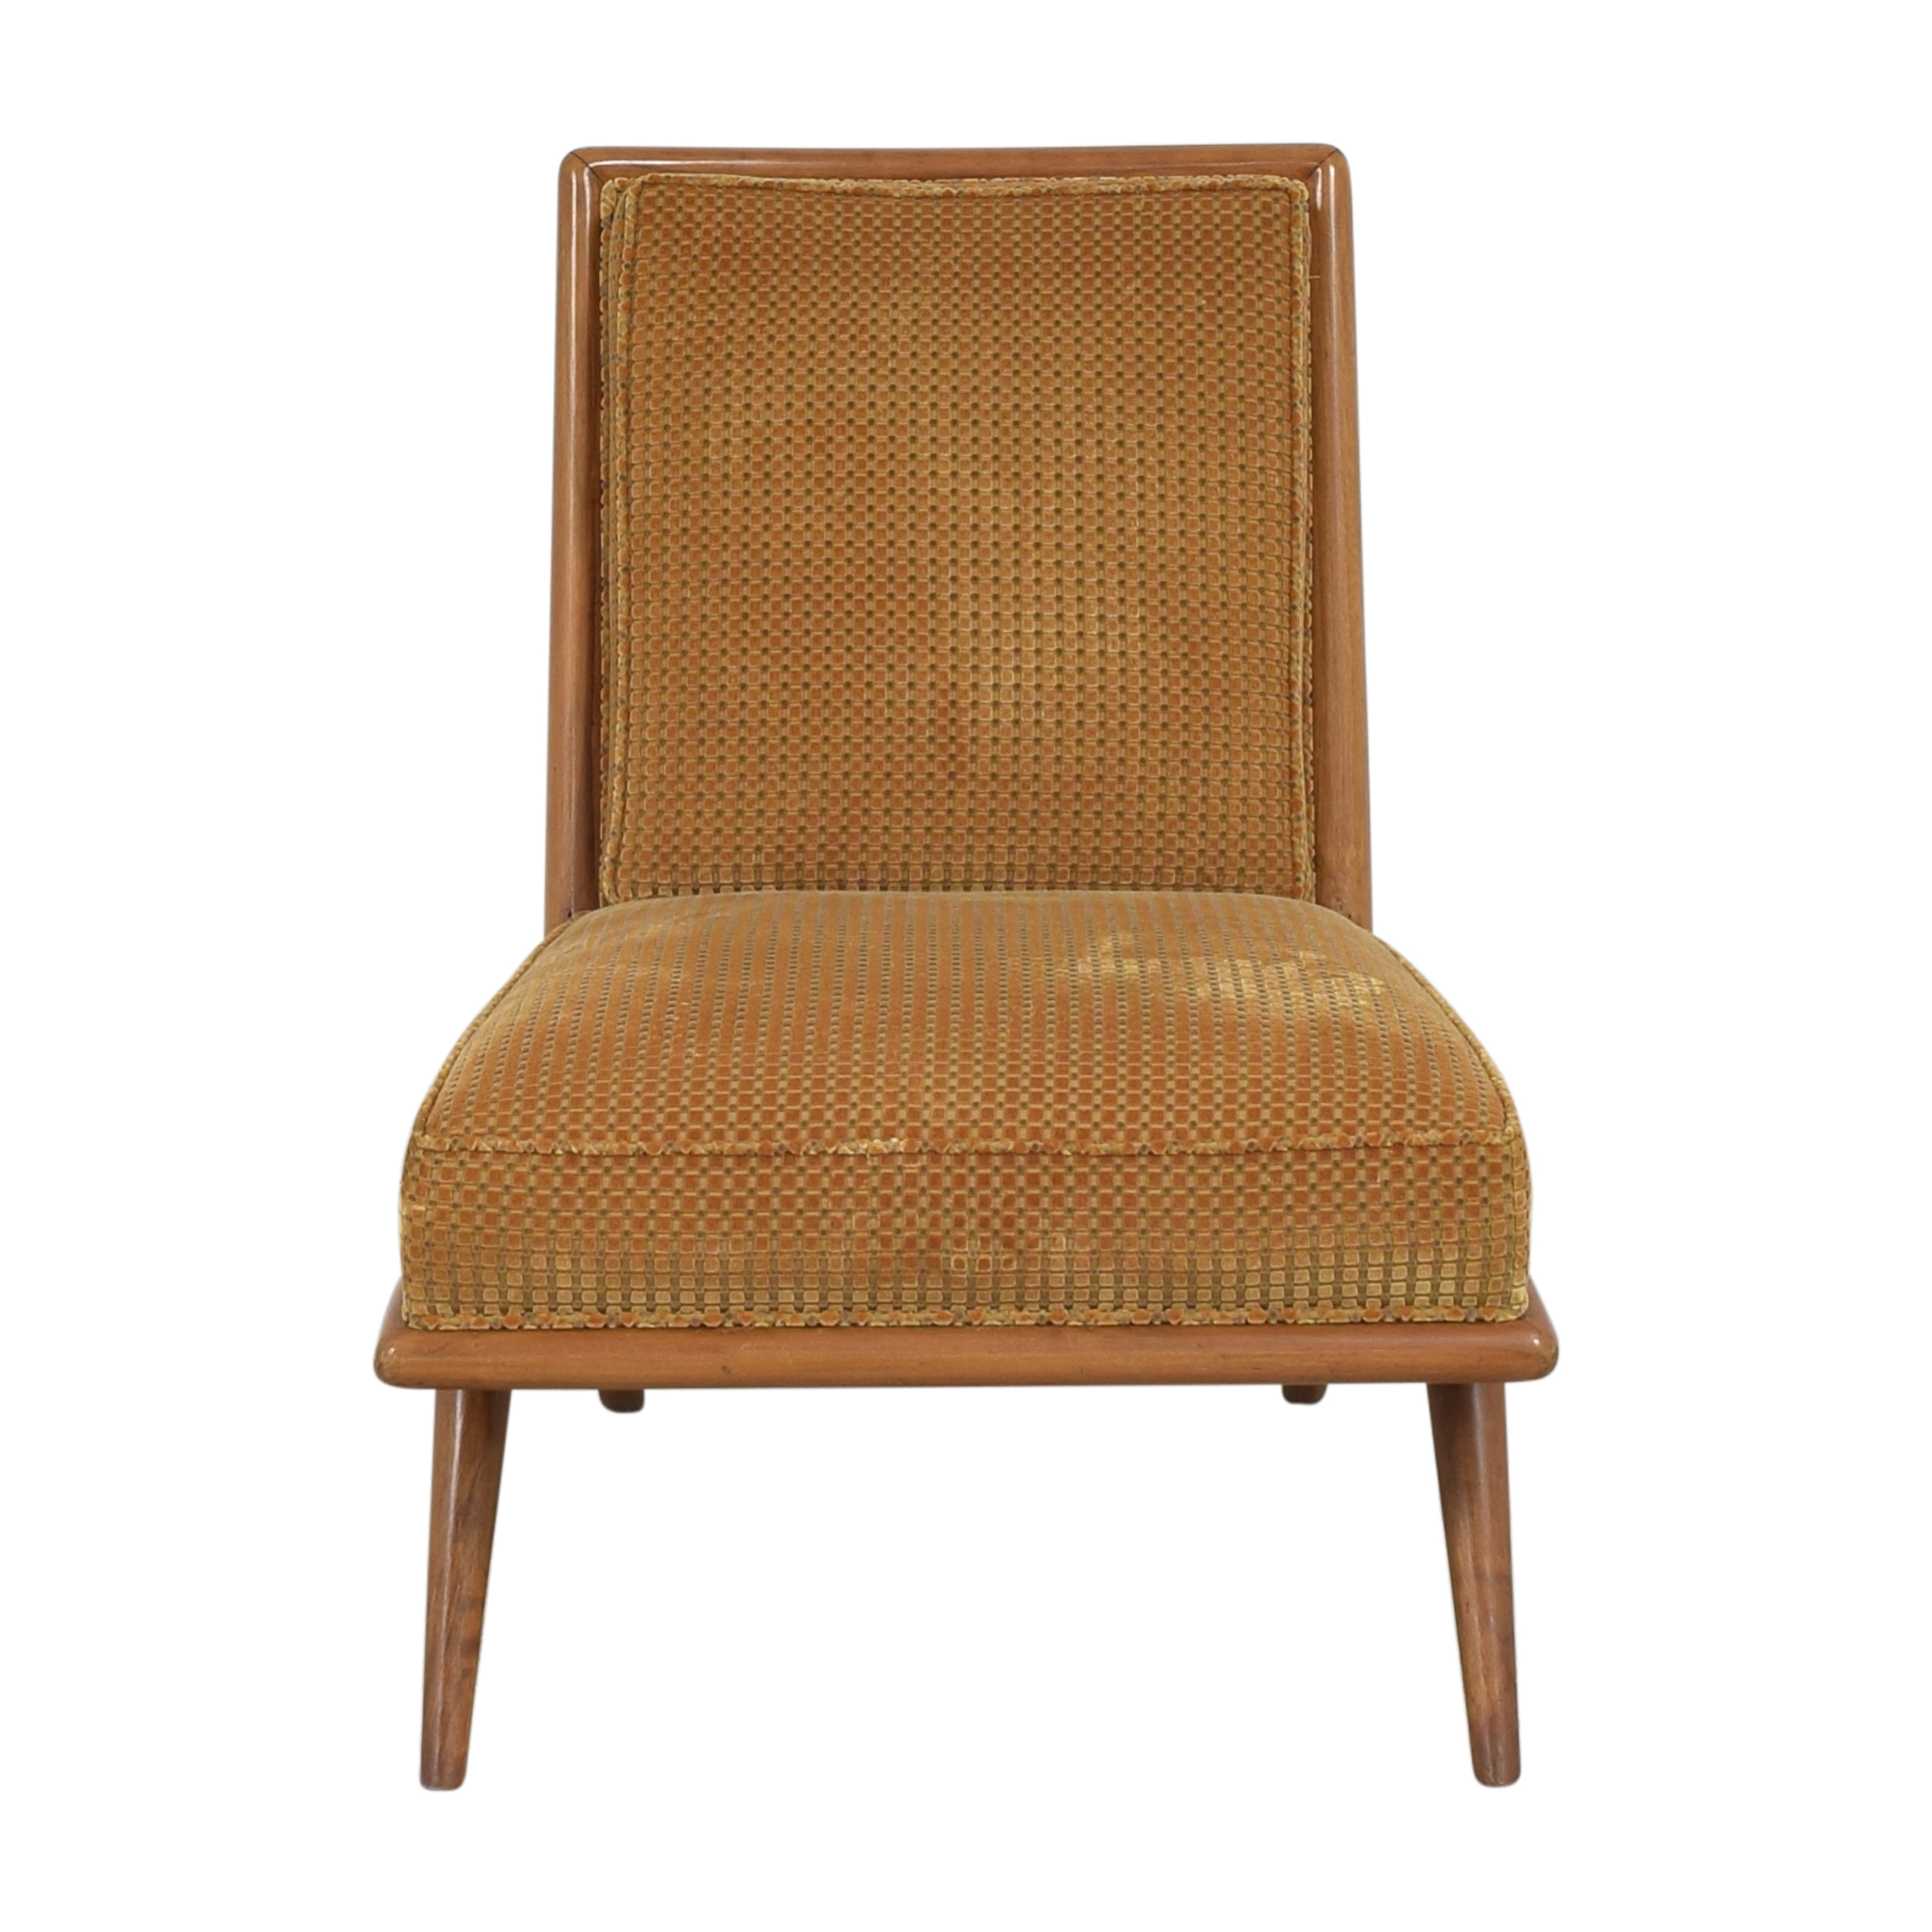 Widdicomb T.H. Robsjohn Gibbings for Widdicomb Slipper Chair for sale